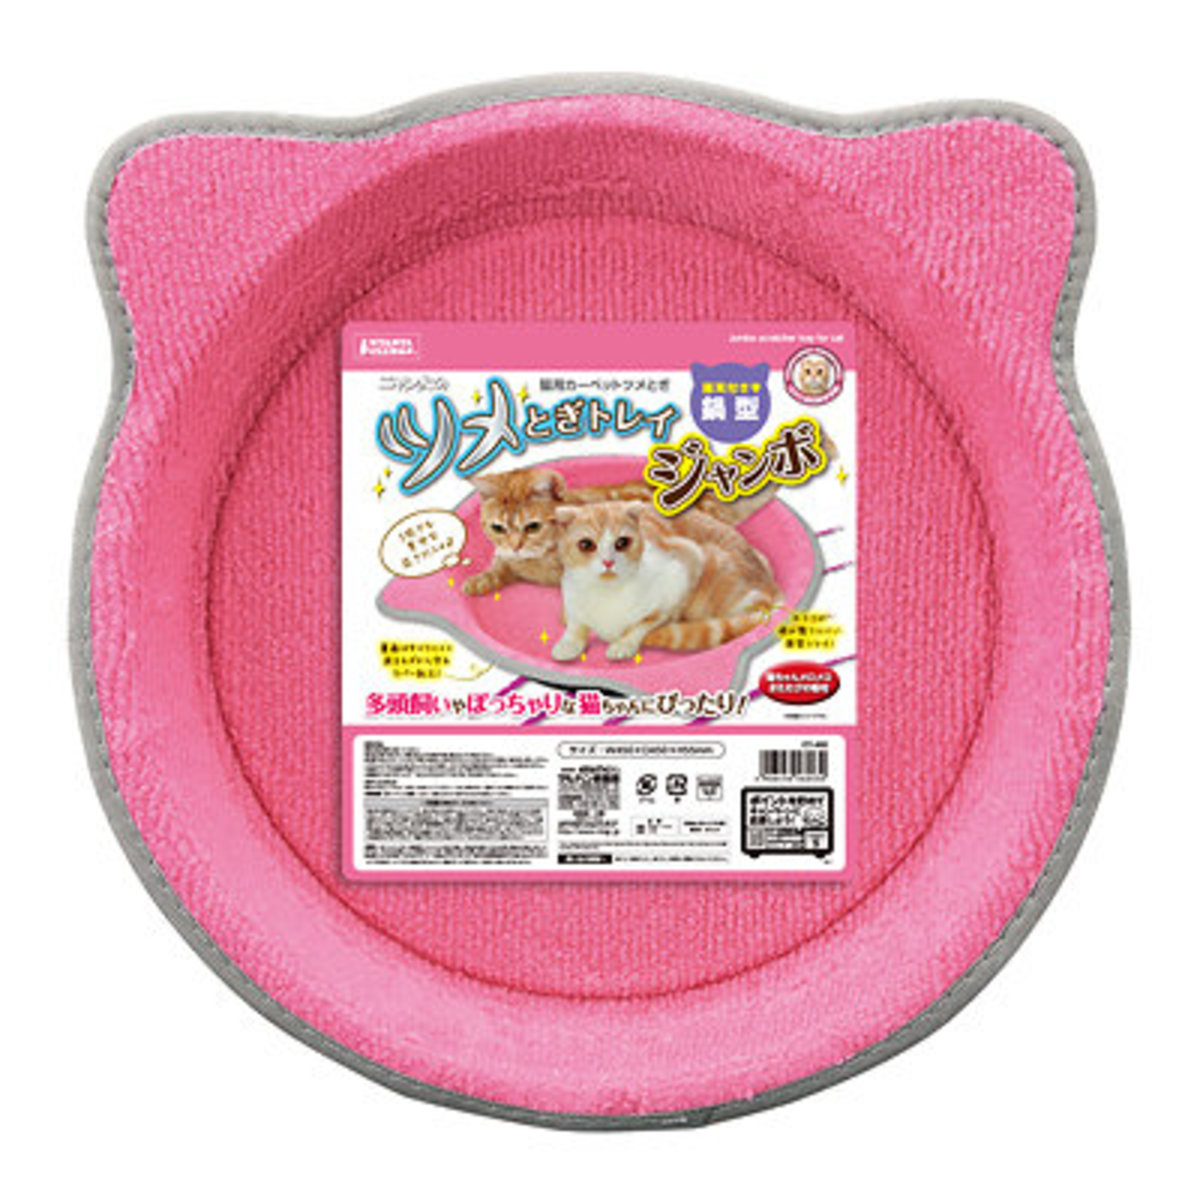 MARUKAN Cat Claw Dish Sharp Tray - Large (56203) (Parallel Import from Japan)